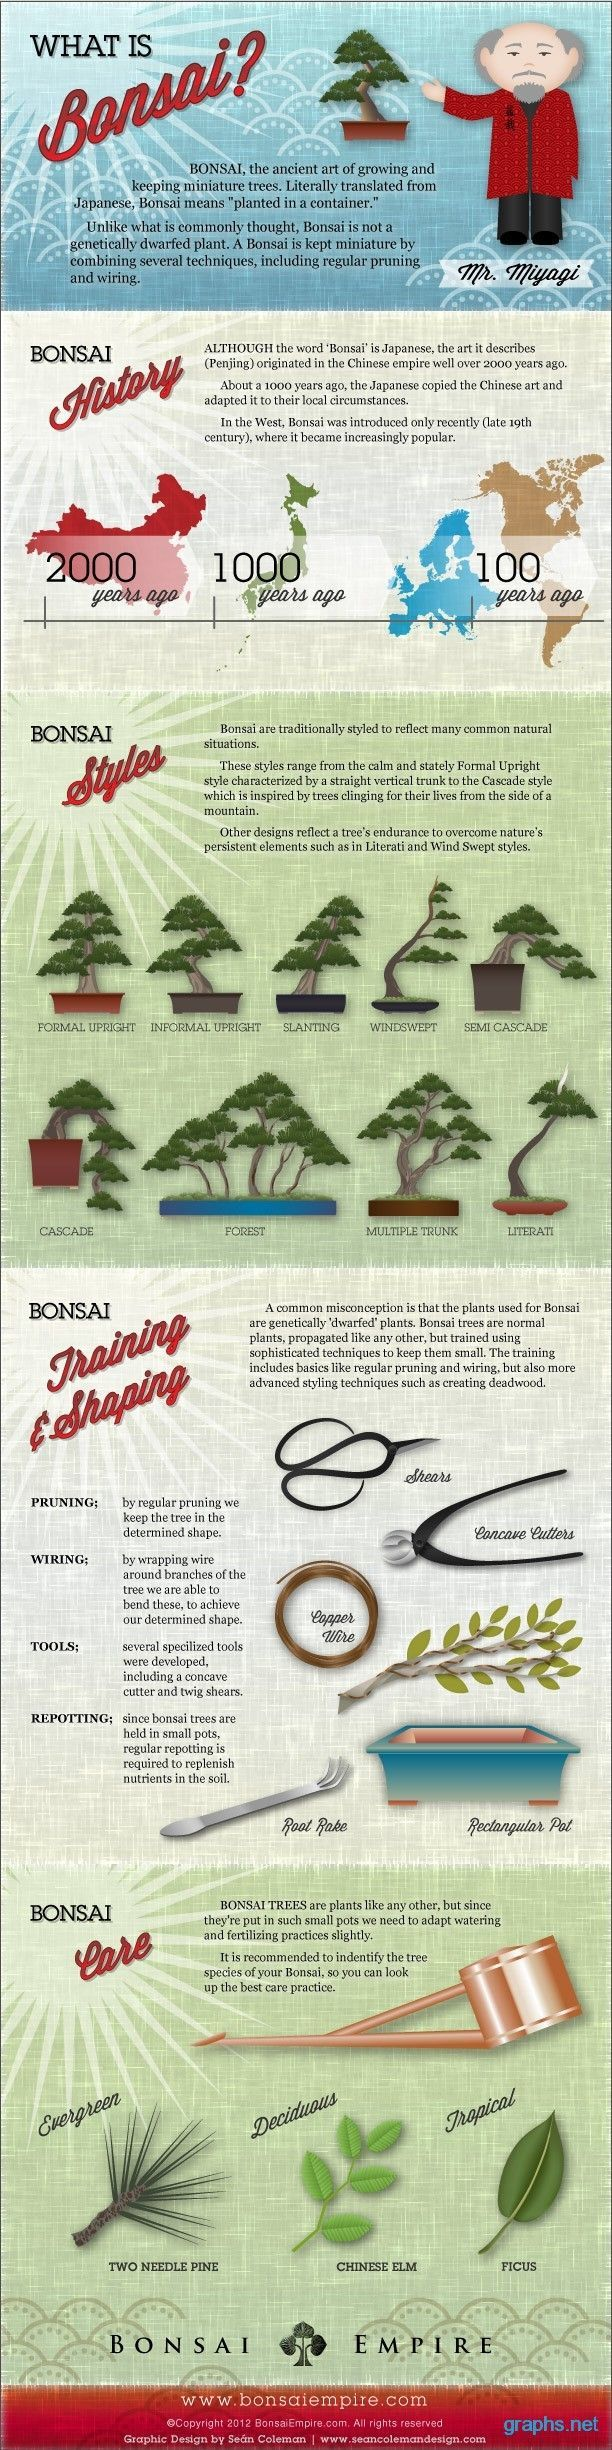 Bonsai are basically miniature trees. They may be small, but they're actually quite delicate and require some special attention. So make sure to read this basic infographic to help you shape and maintain your bonsai trees the right way. More details at http://homeandgardenamerica.com/the-basics-of-bonsai